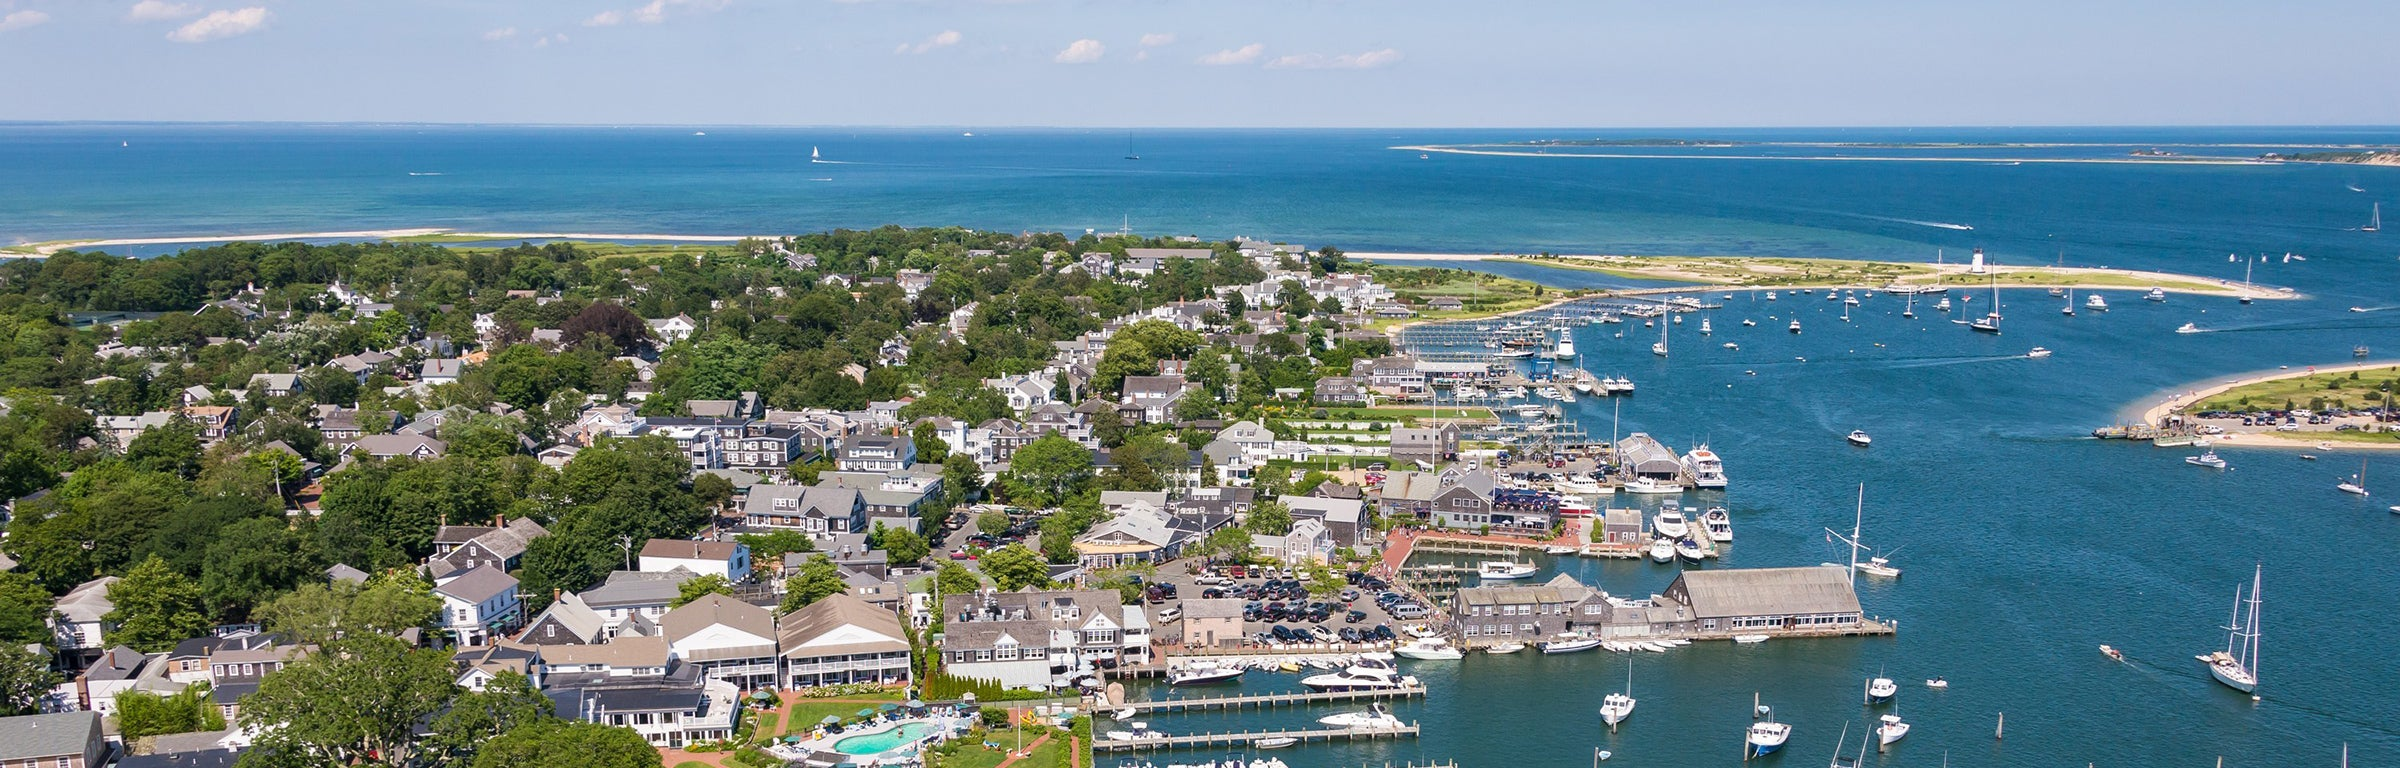 Edgartown Community Photo 1